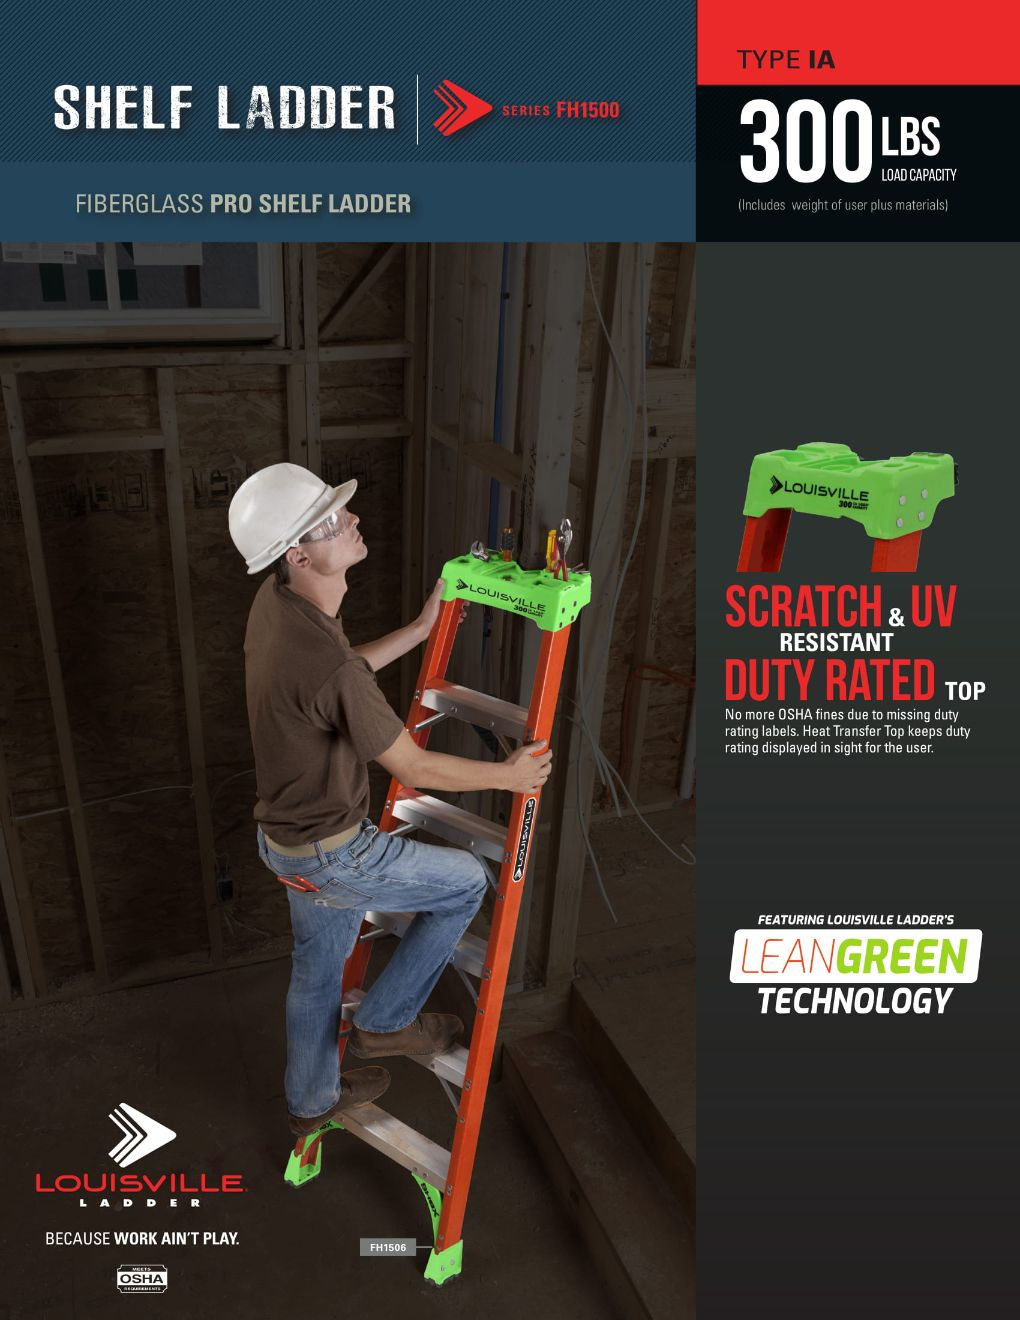 FH1500 Single Ladder Flyer and Spec Sheet Marketing Material Image